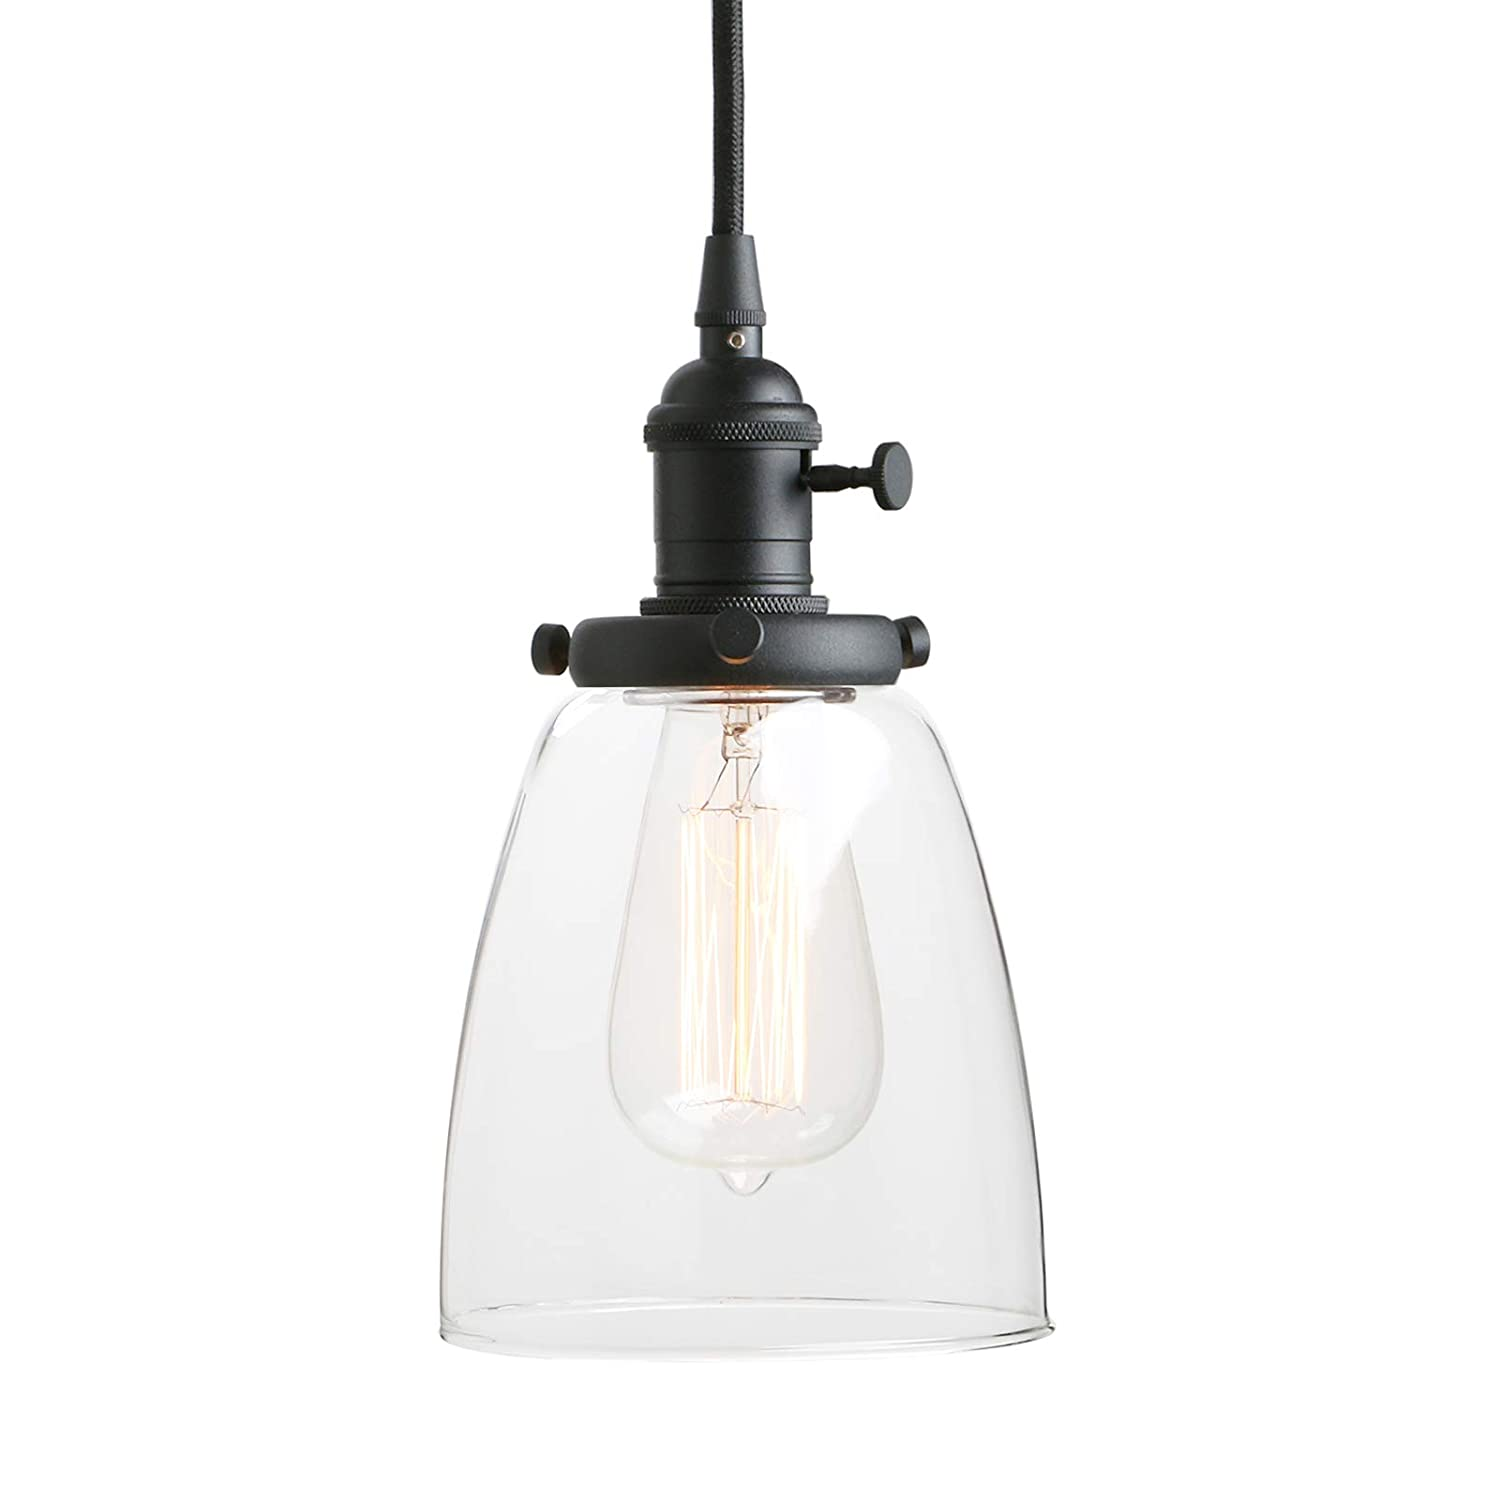 Pathson industrial glass pendant lighting black vintage style hanging light fixture for living room dining room